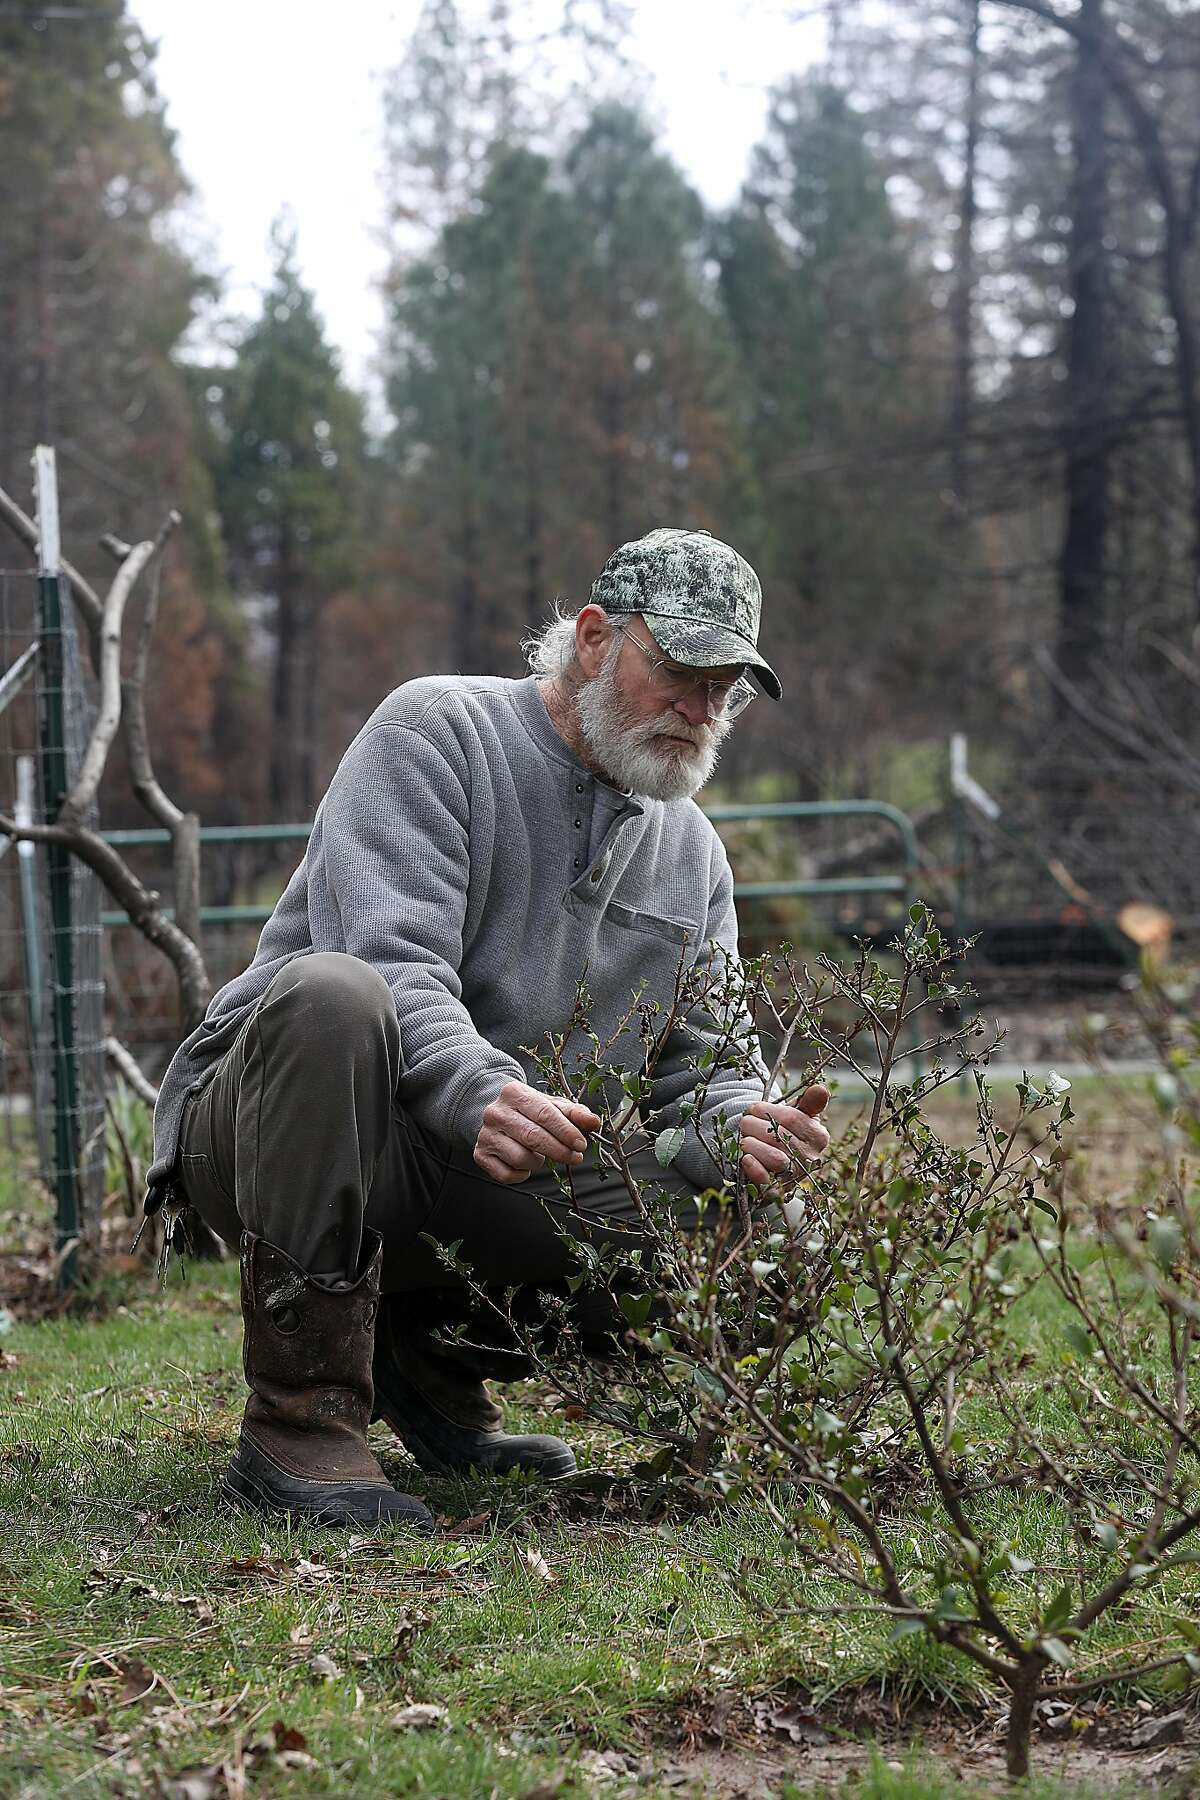 Horticultural tea farmer Mike Fritts takes care of one of his 200 plants existing on his one acre property at Golden Feather Tea Farm on Thursday, Feb. 28, 2019, in Oroville, Calif. There were 800 plants producing, 5-6 pounds a year of tea leaves, with most of it going to Lazy Bear in SF. They recently discovered they have 200 plants yet since the Camp fire and vow to restore it.